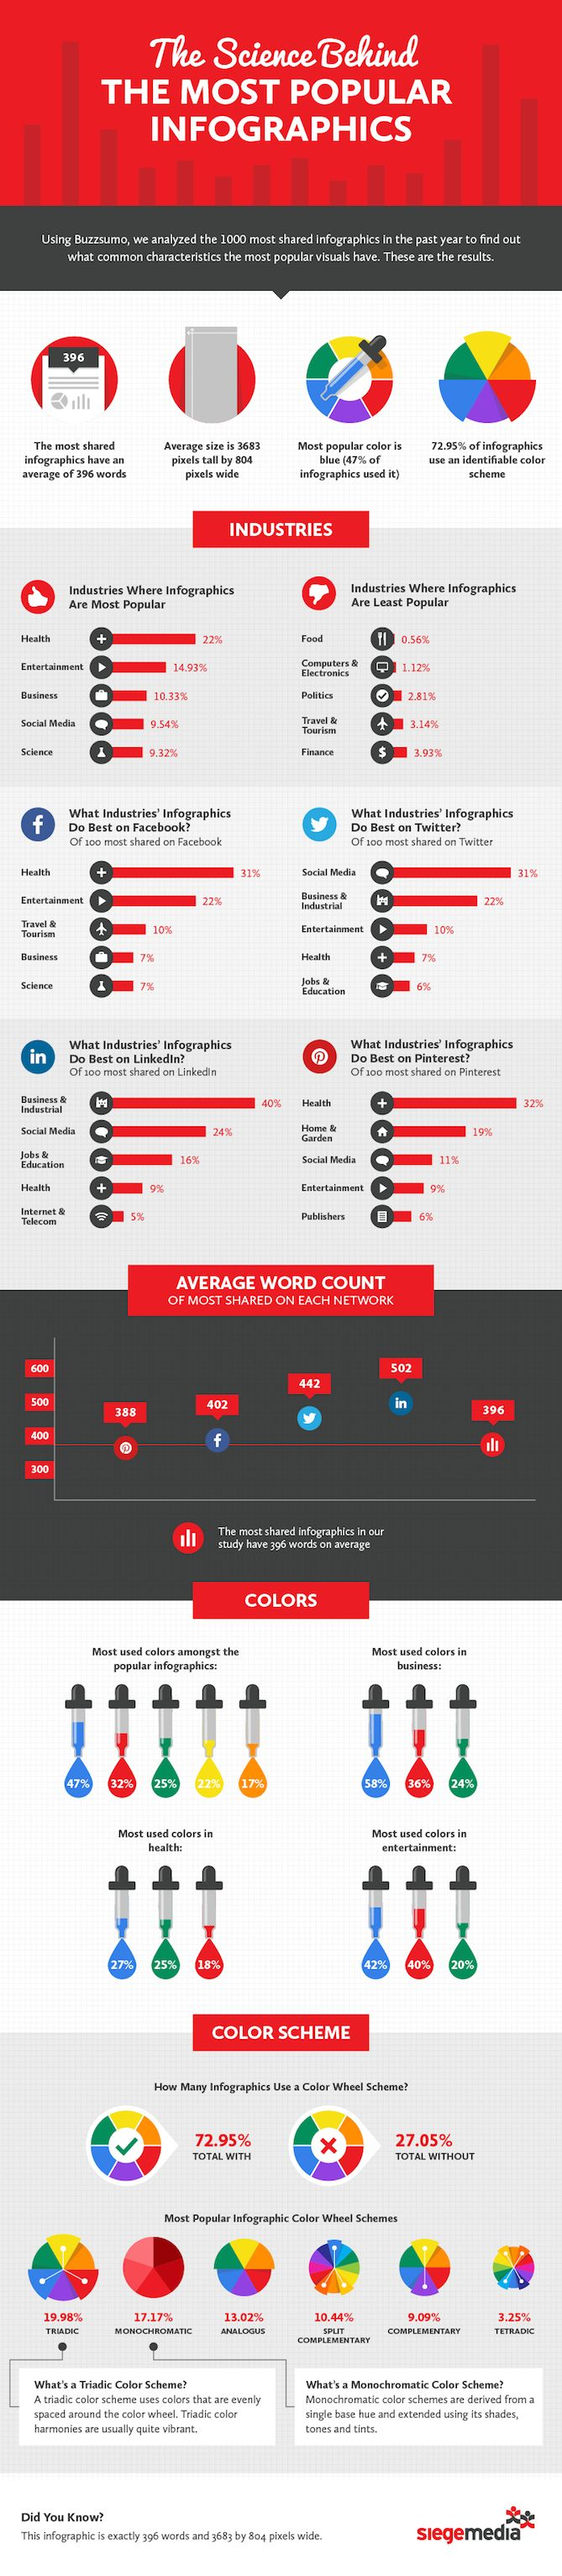 The Science Behind the Most Popular Infographics [Infographic]